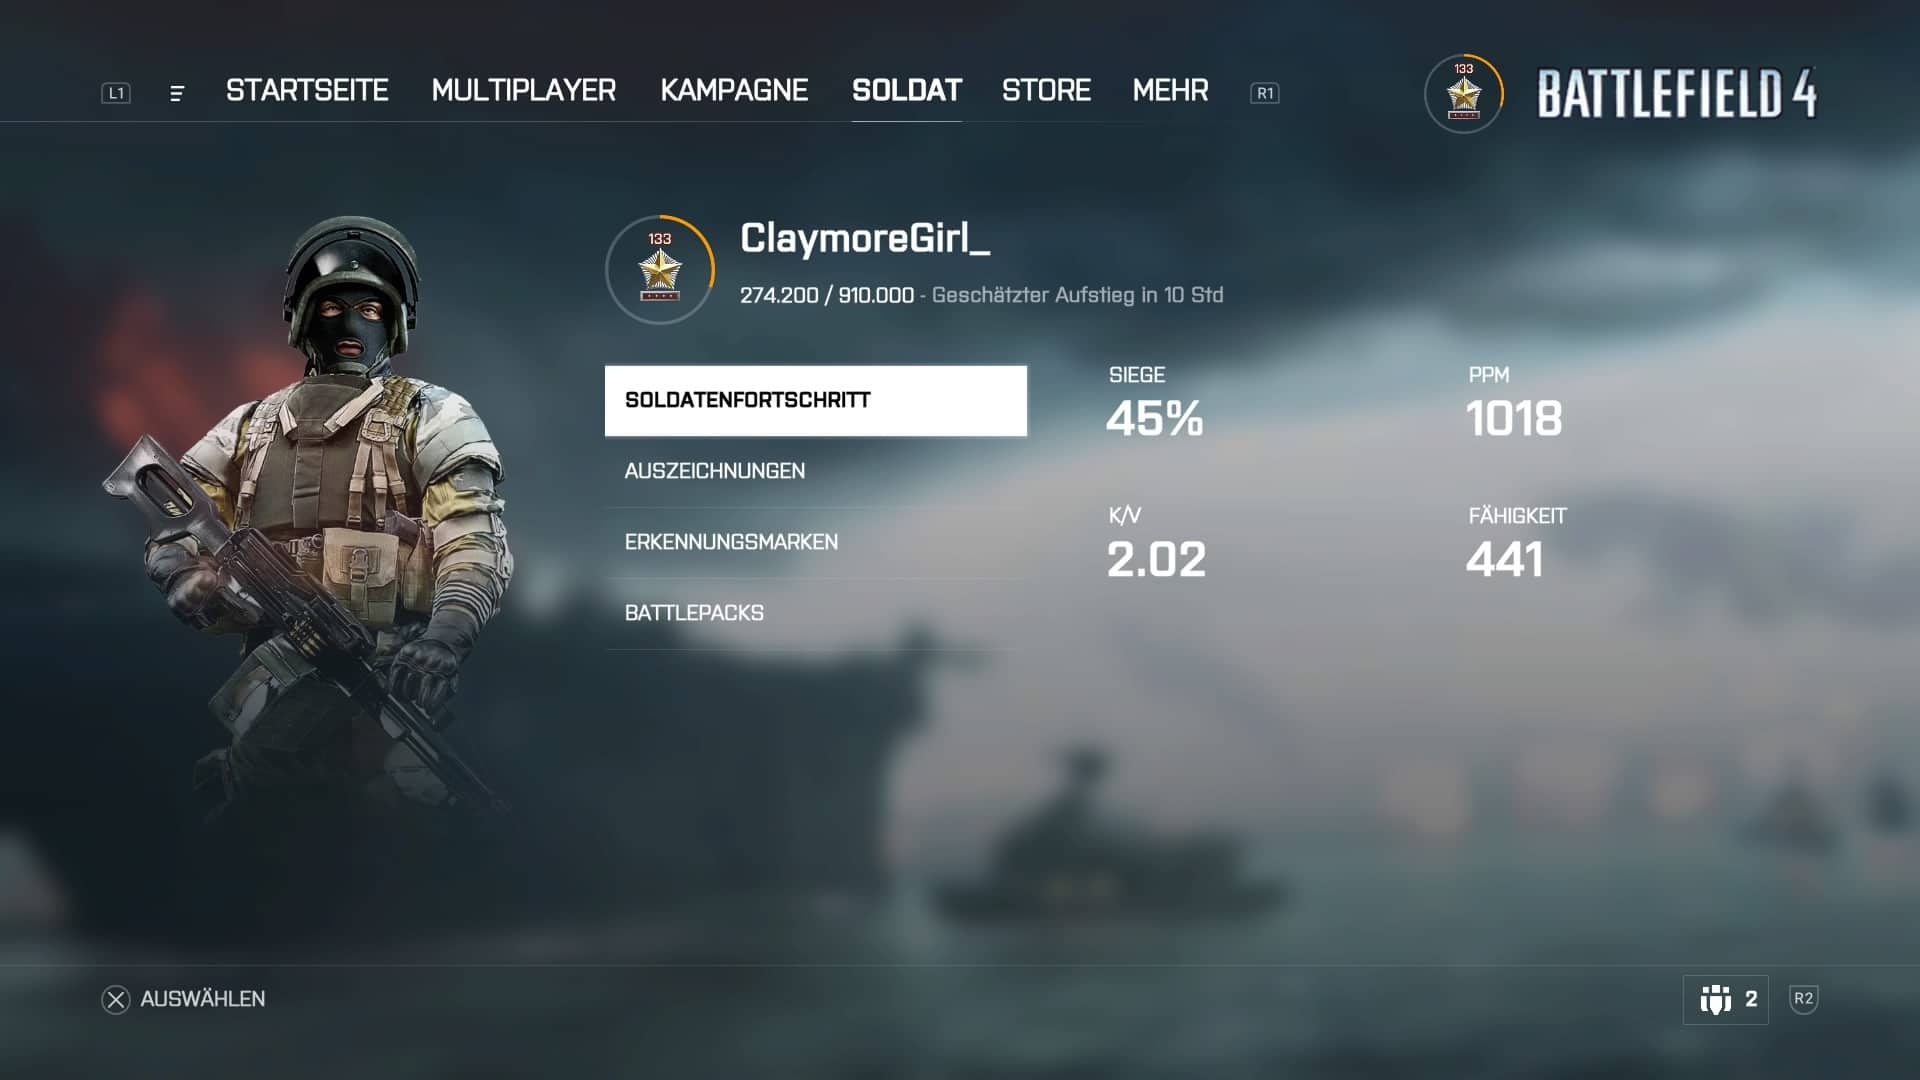 Battlefield 4 - ClaymoreGirl_